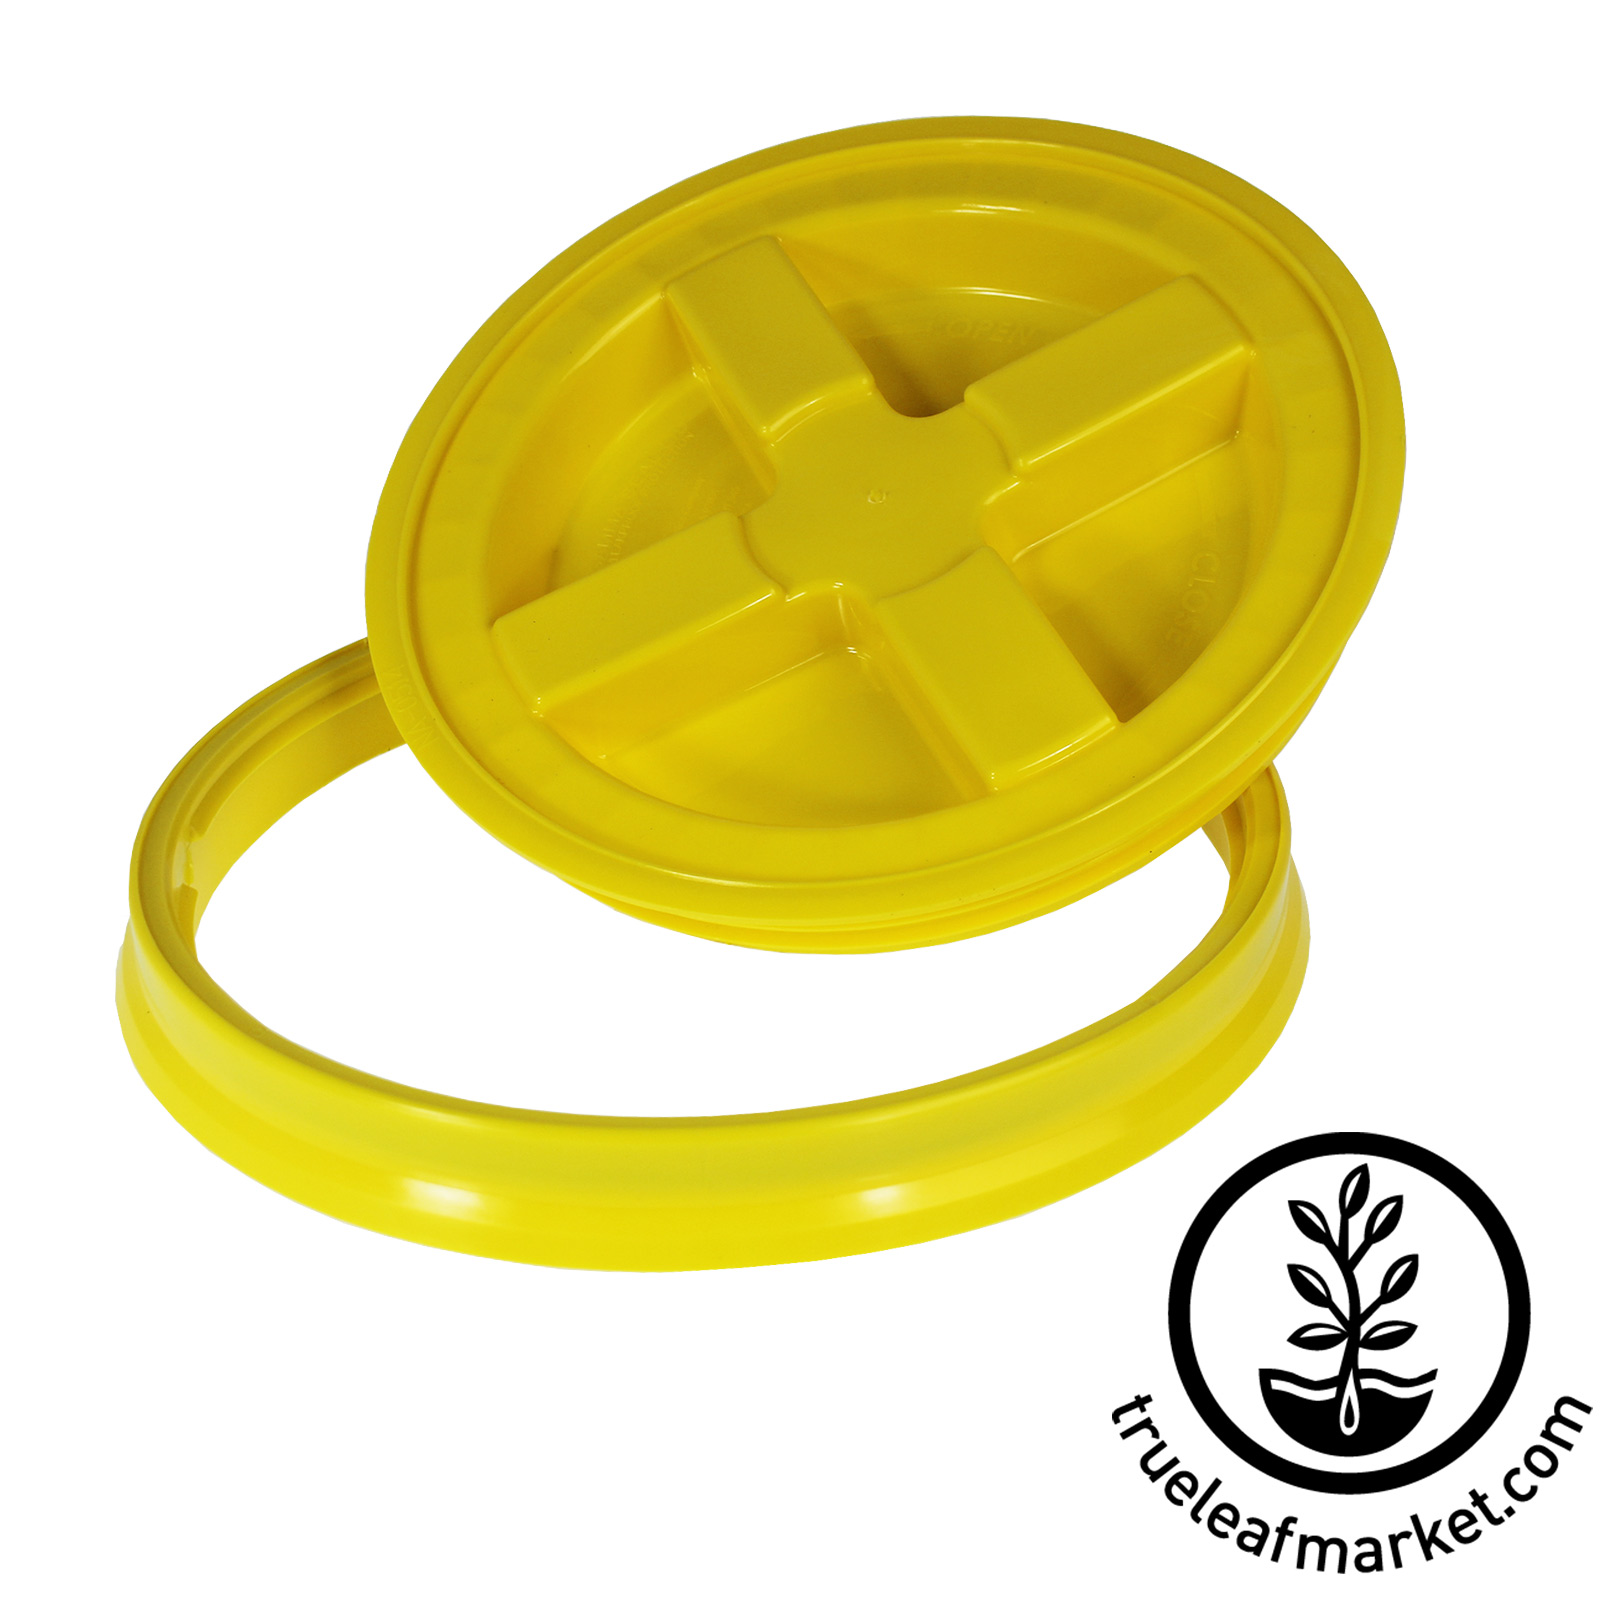 Yellow Lids for Reusable Storage